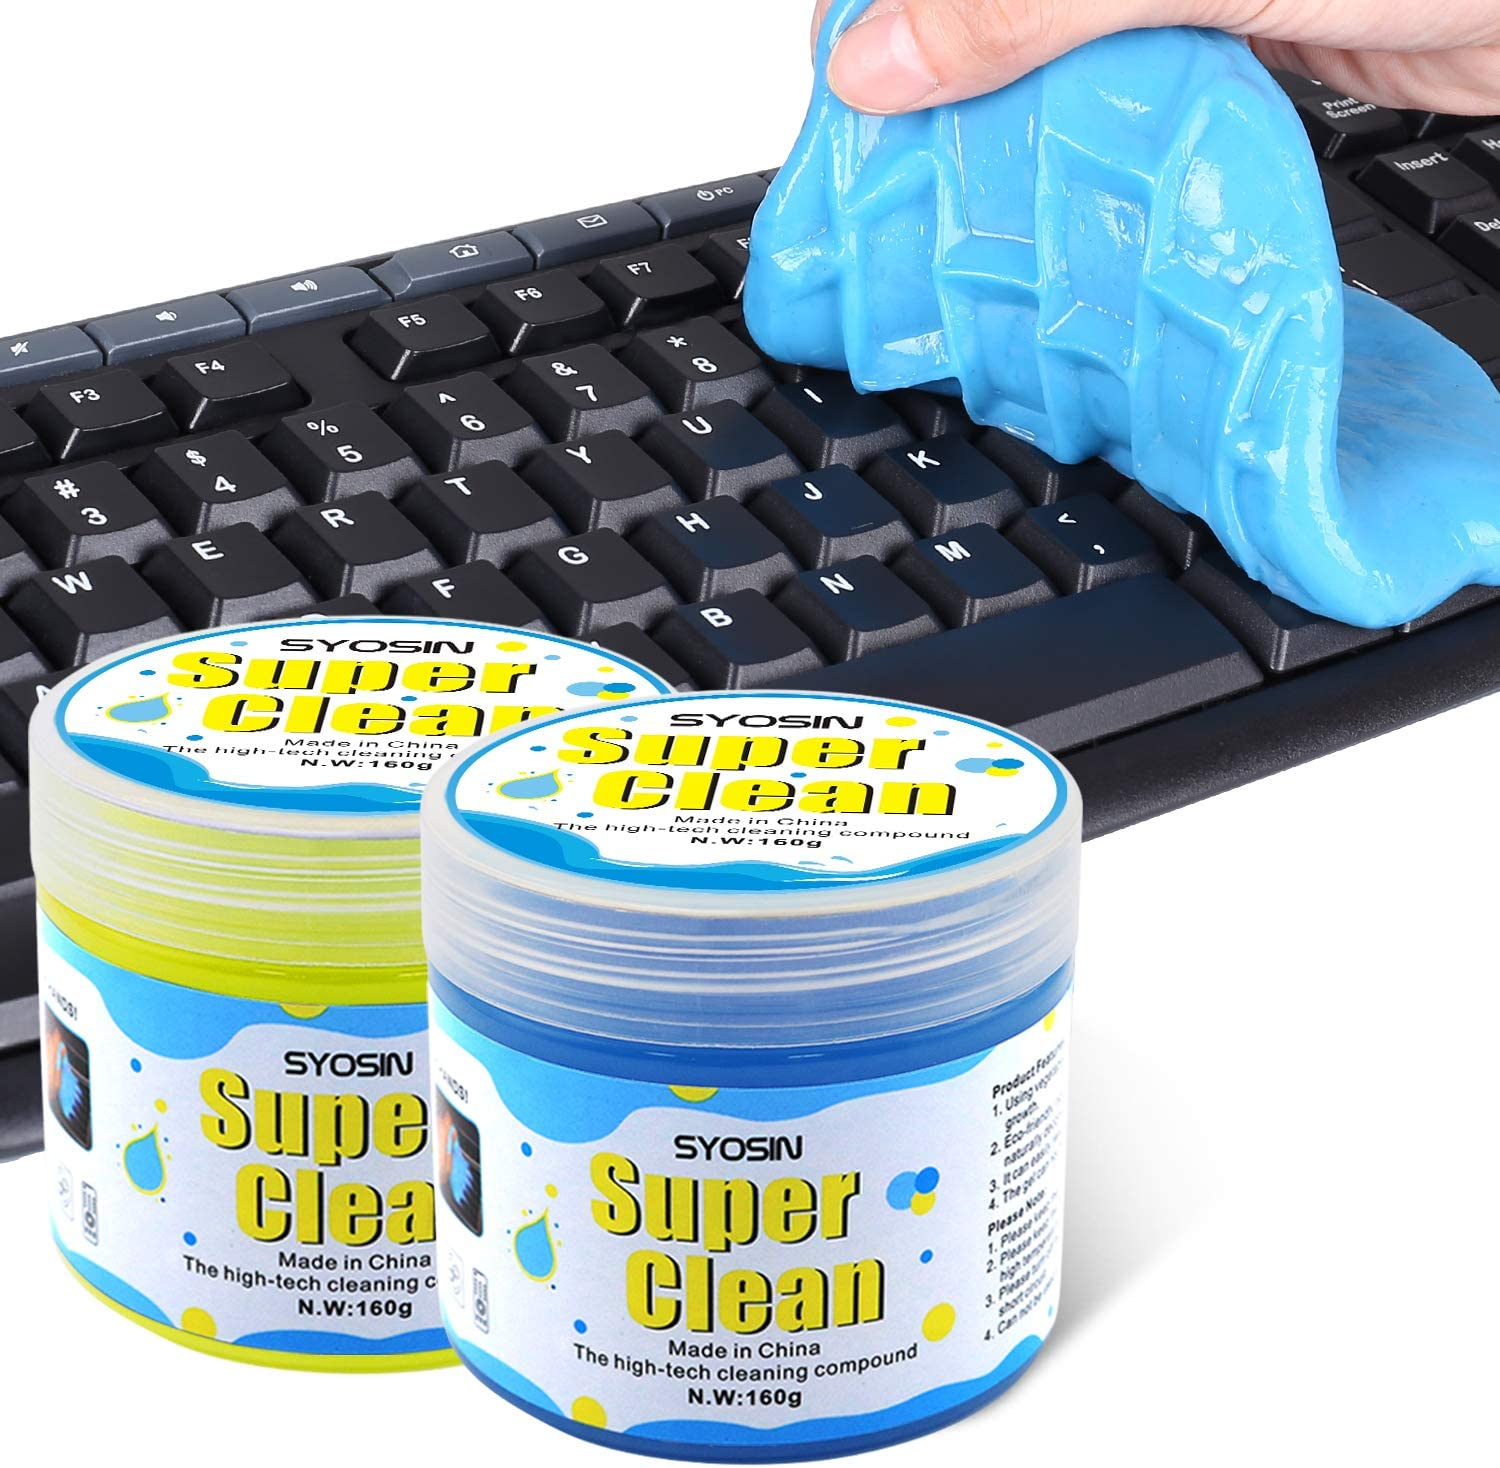 SYOSIN 2PCS Keyboard Cleaner Universal Dust Cleaning Gel Dirt Bacteria Cleaner for Laptops, Car Vents, Printers, Calculators